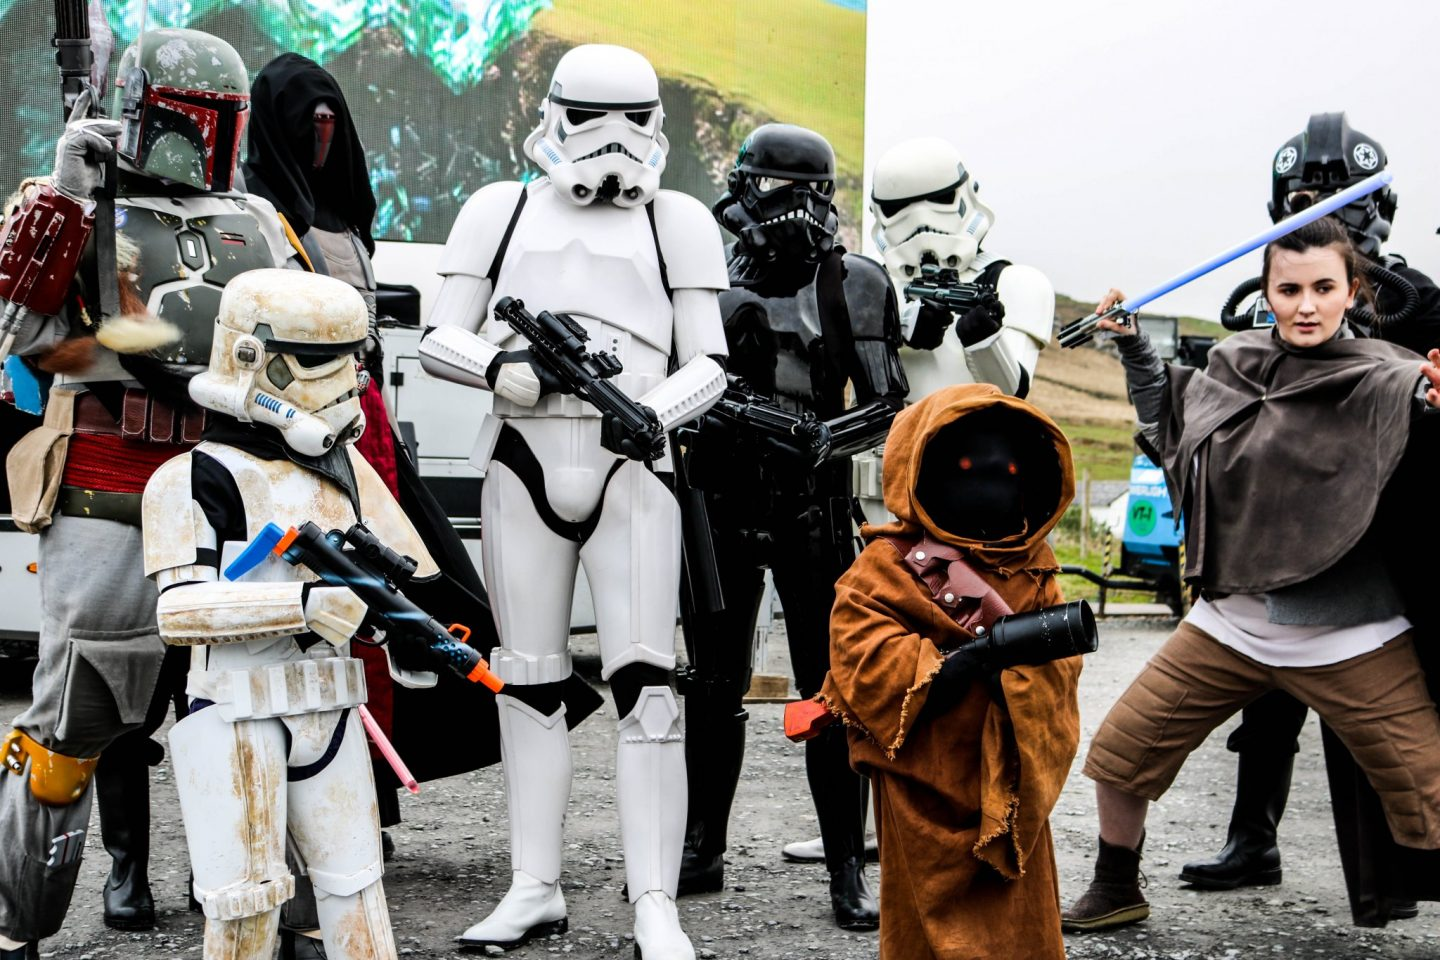 Star Wars Film Locations Ireland: Finding the force in Portmagee